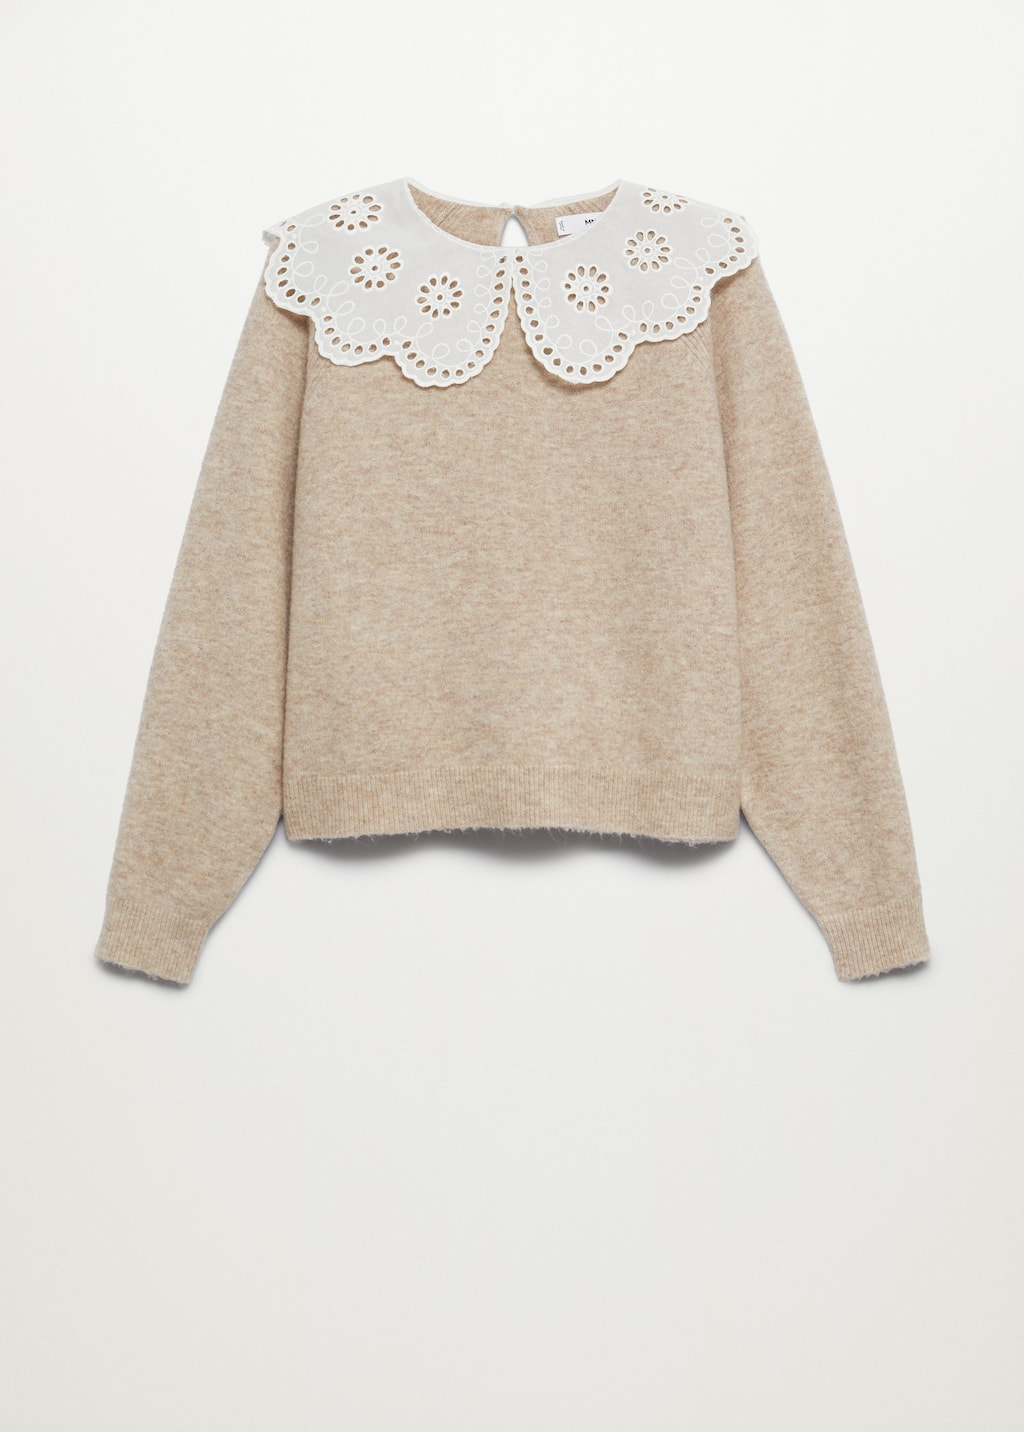 Baby doll neck sweater - Article without model